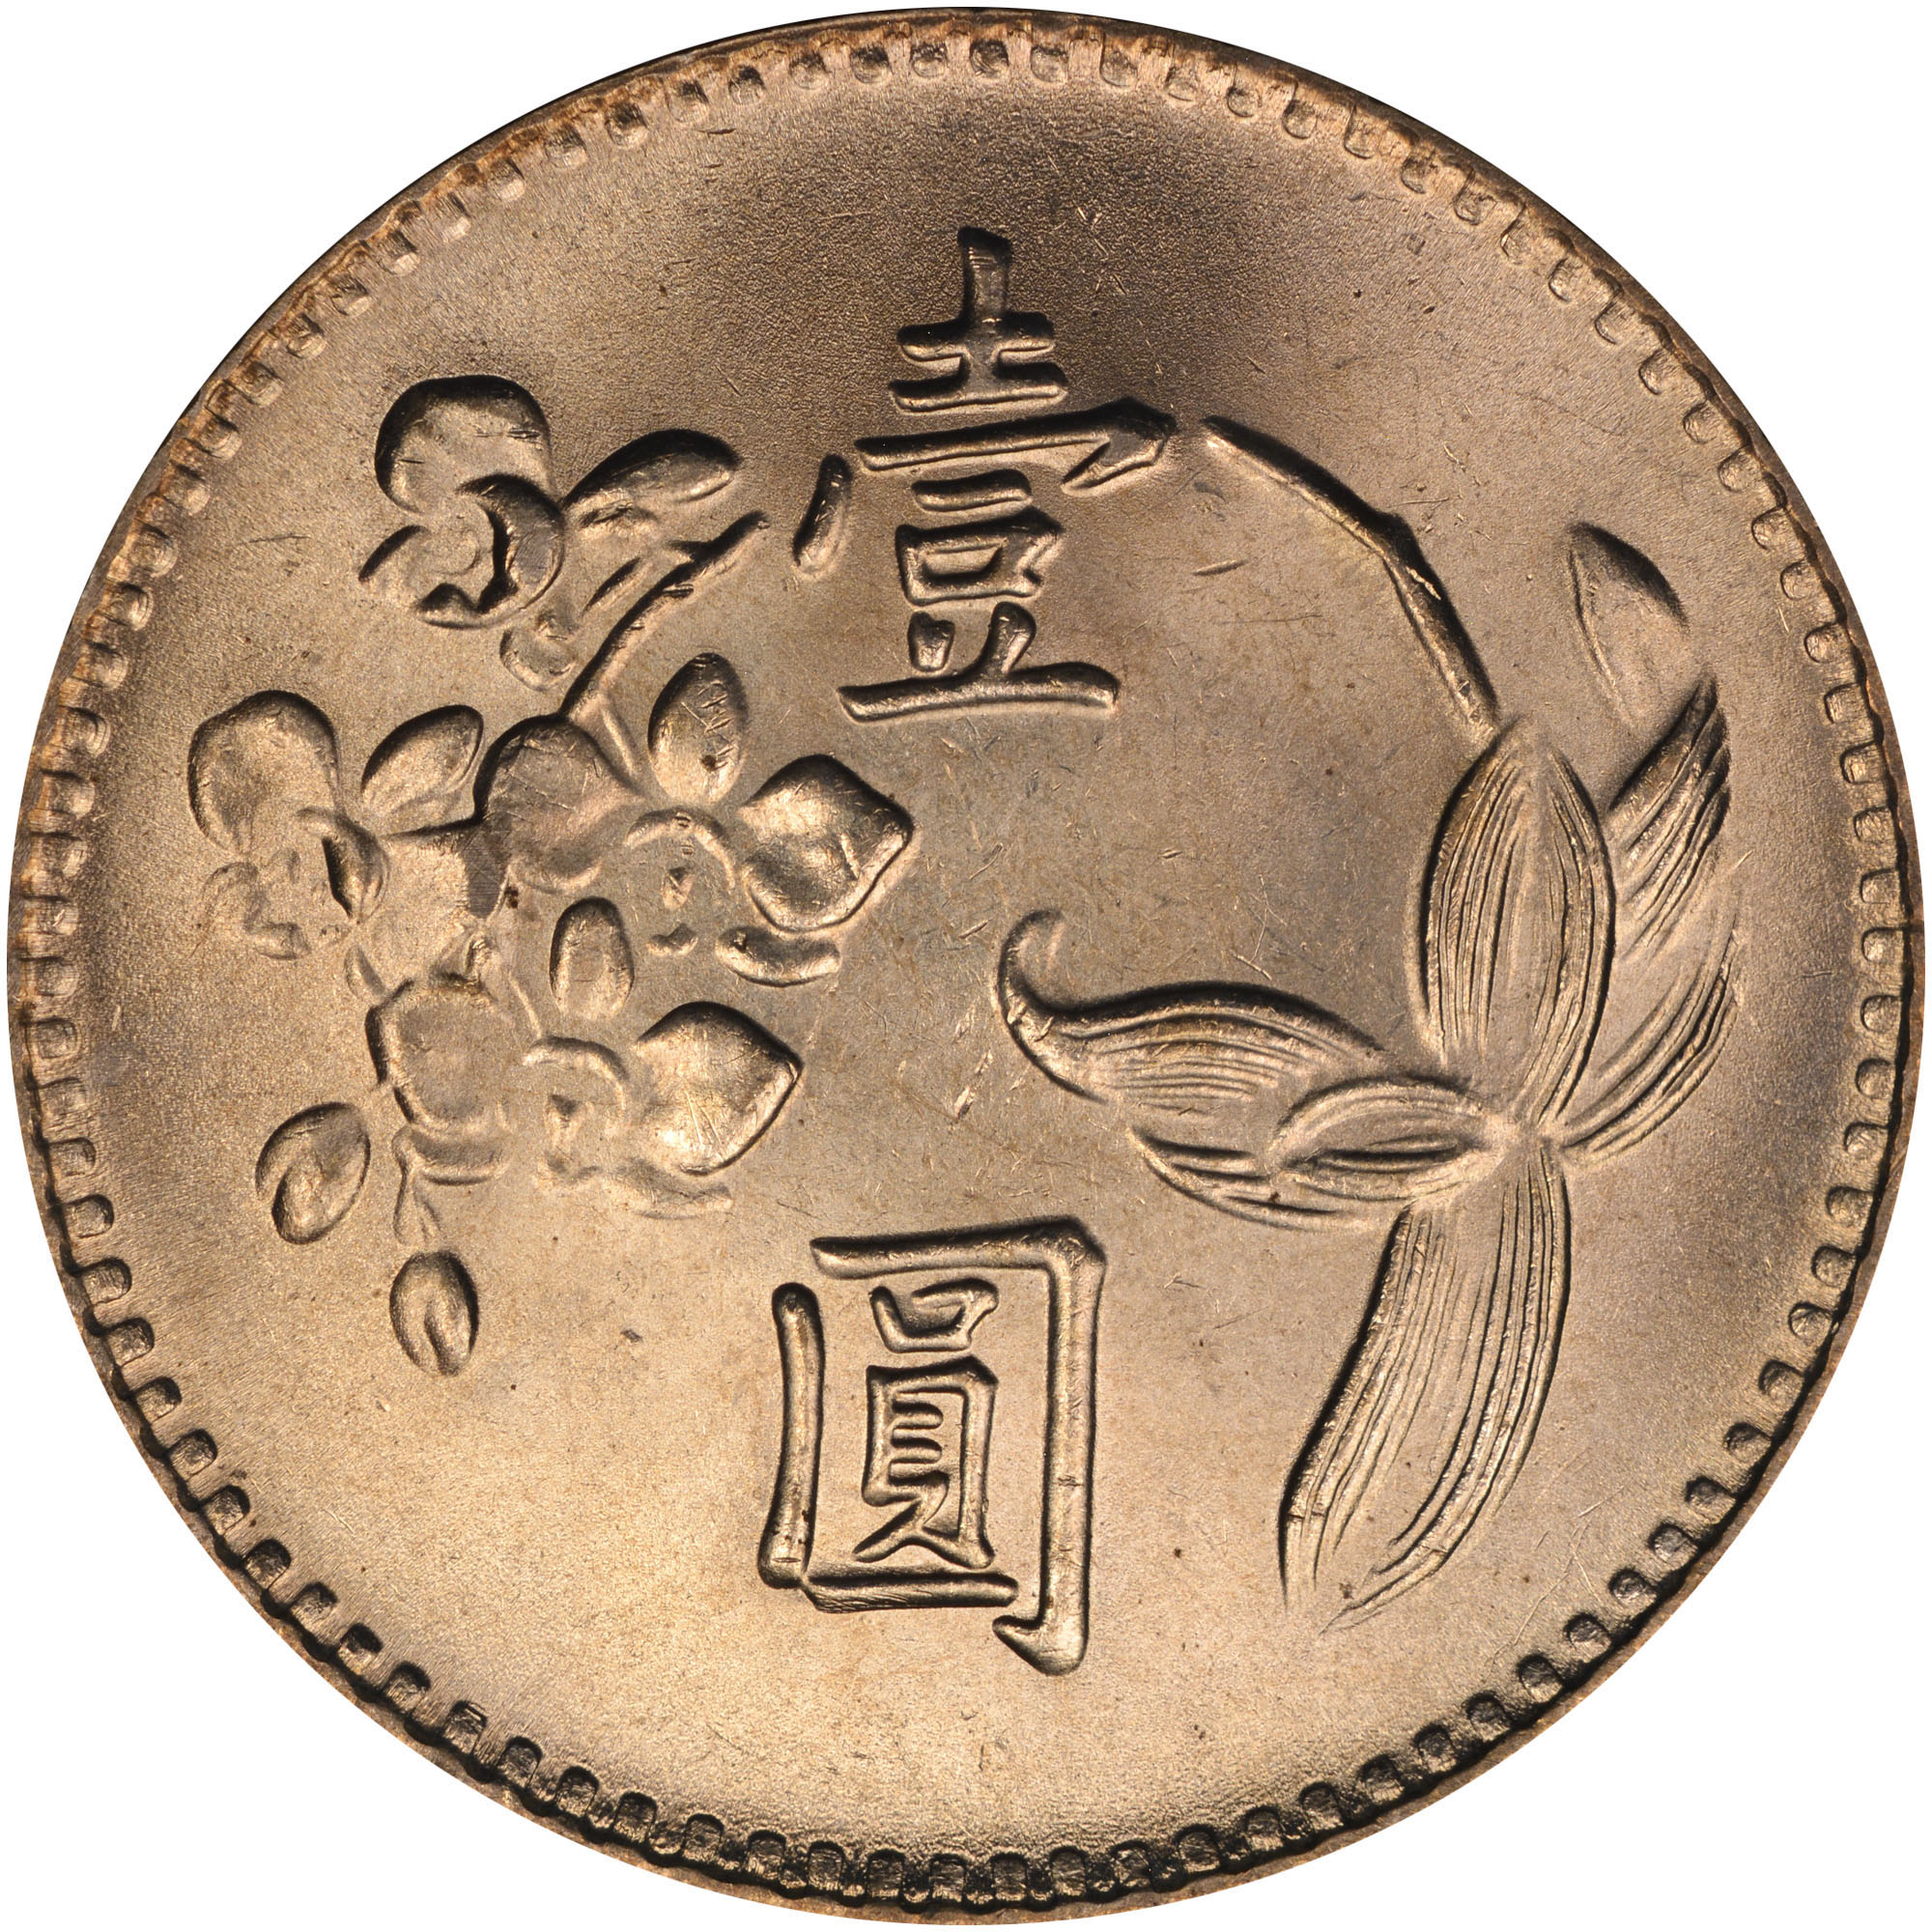 dating taiwan coins Free easy to submit text-based coin dating the coin can be china 10 20 50 cents cent chiao dollar yuan fat man taiwan chine chinese chineese.